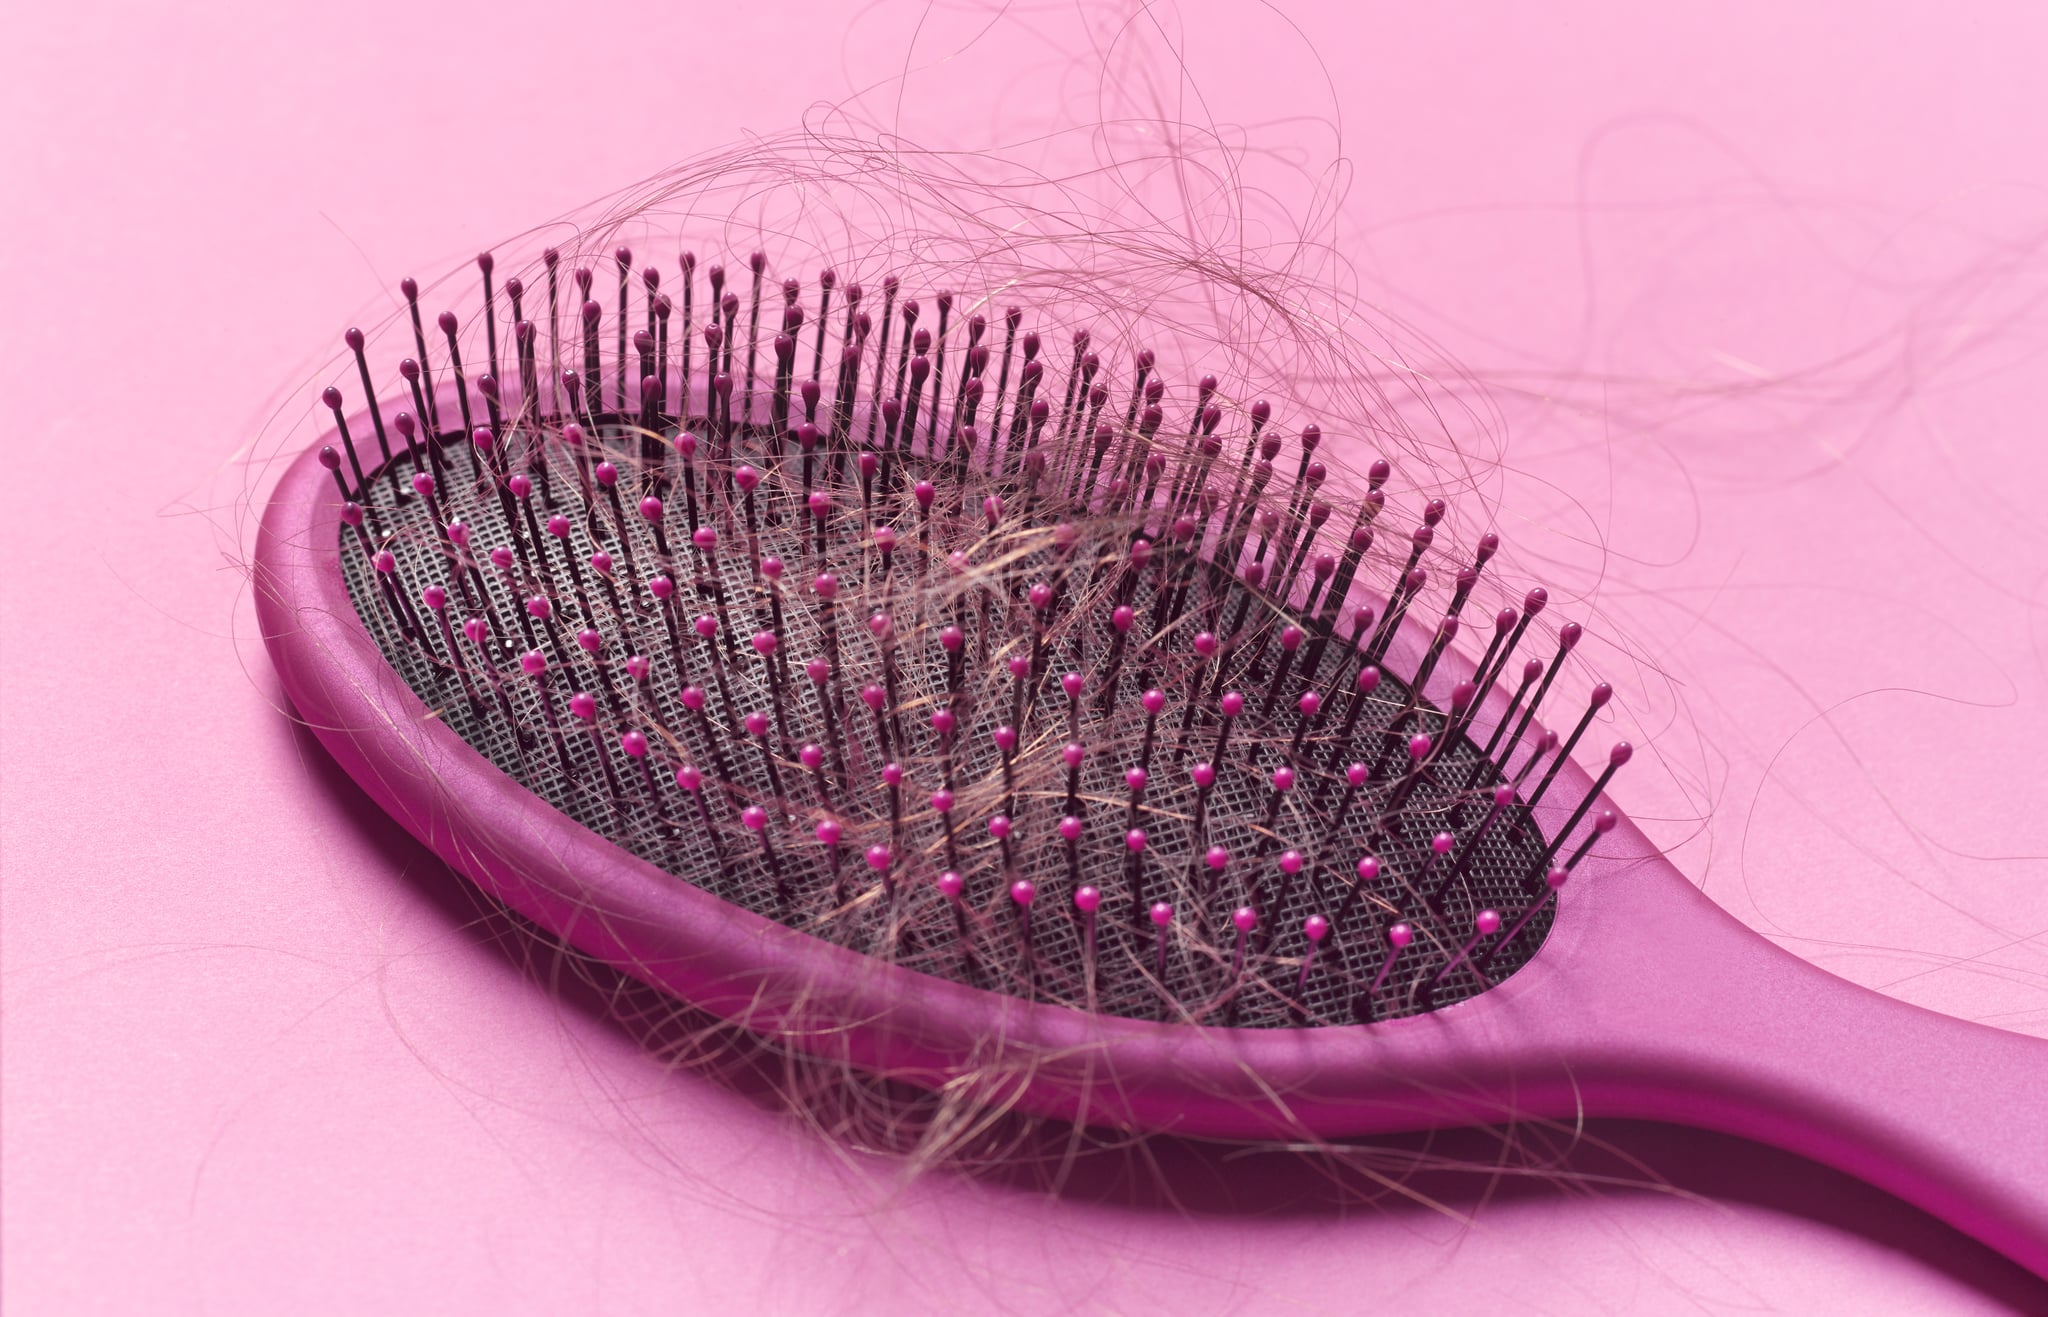 Close up of a brush with loose hair in it on a pink background